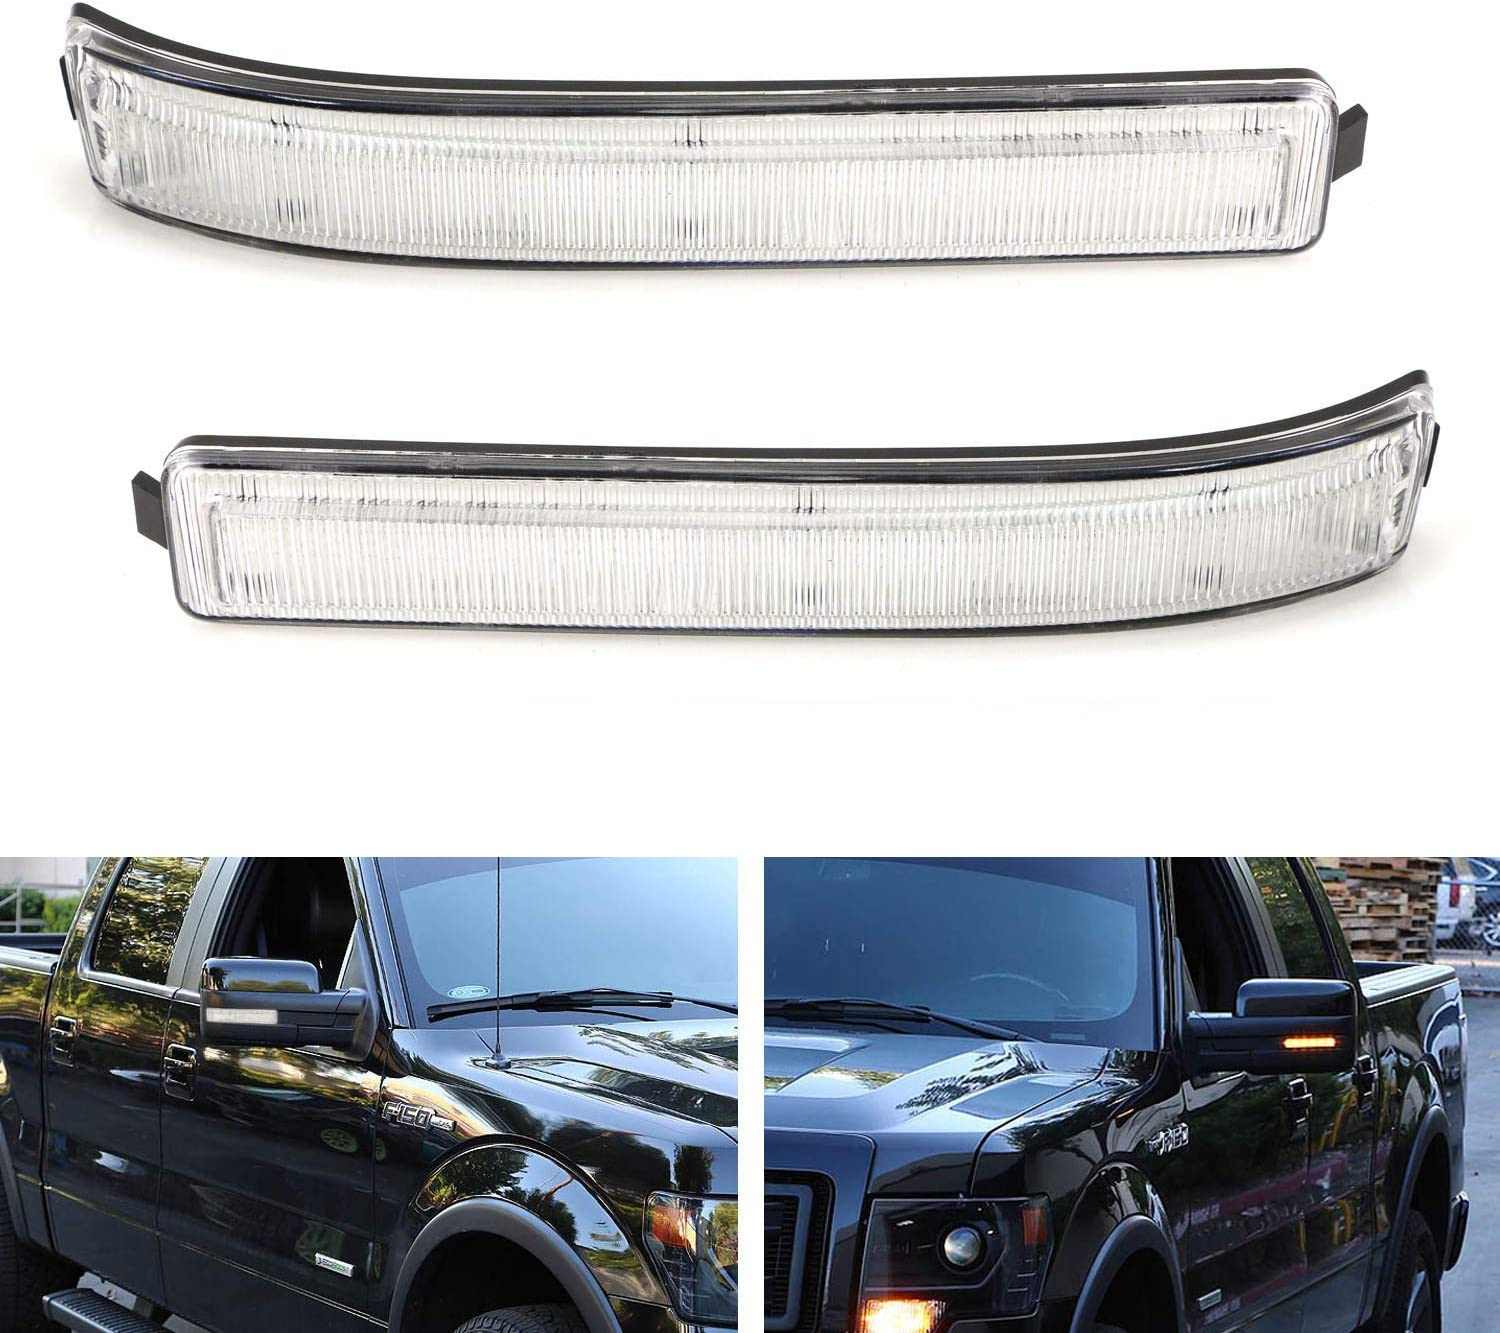 Powered by 24 Pieces of SMD LED Chips 2 Smoked Lens Amber LED Side Mirror Turn Signal Lamps Compatible with Ford F150 Expedition, Lincoln Mark LT iJDMTOY